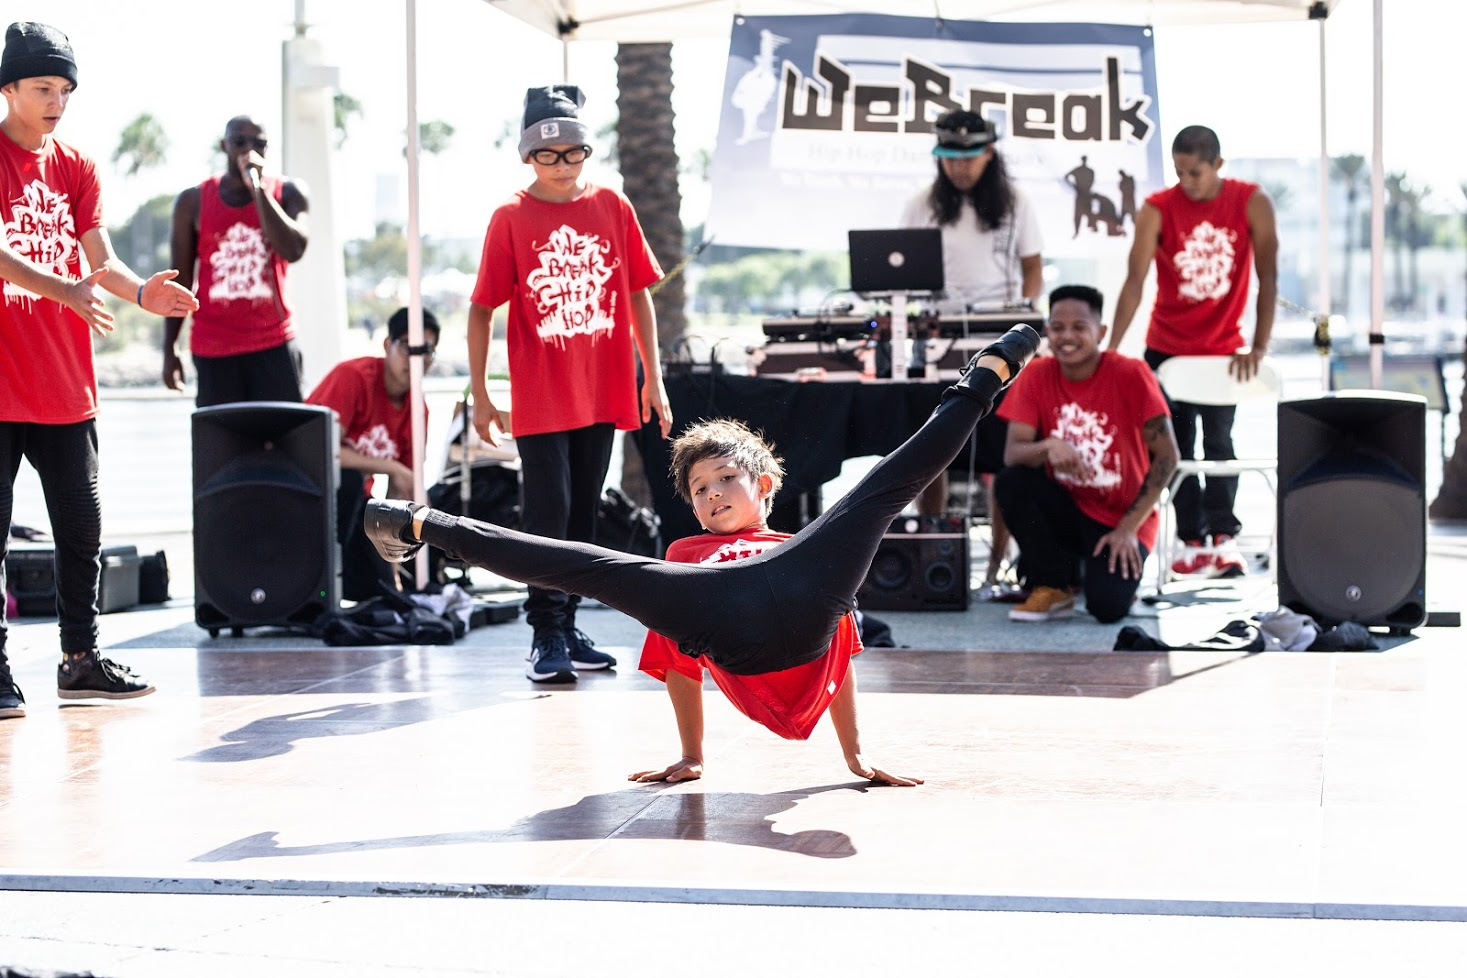 b1f5a4025a25 Webreak is a mobile hip-hop dance company that teaches the proper form of  breakdance to kids all over the Los Angeles and Orange County areas!